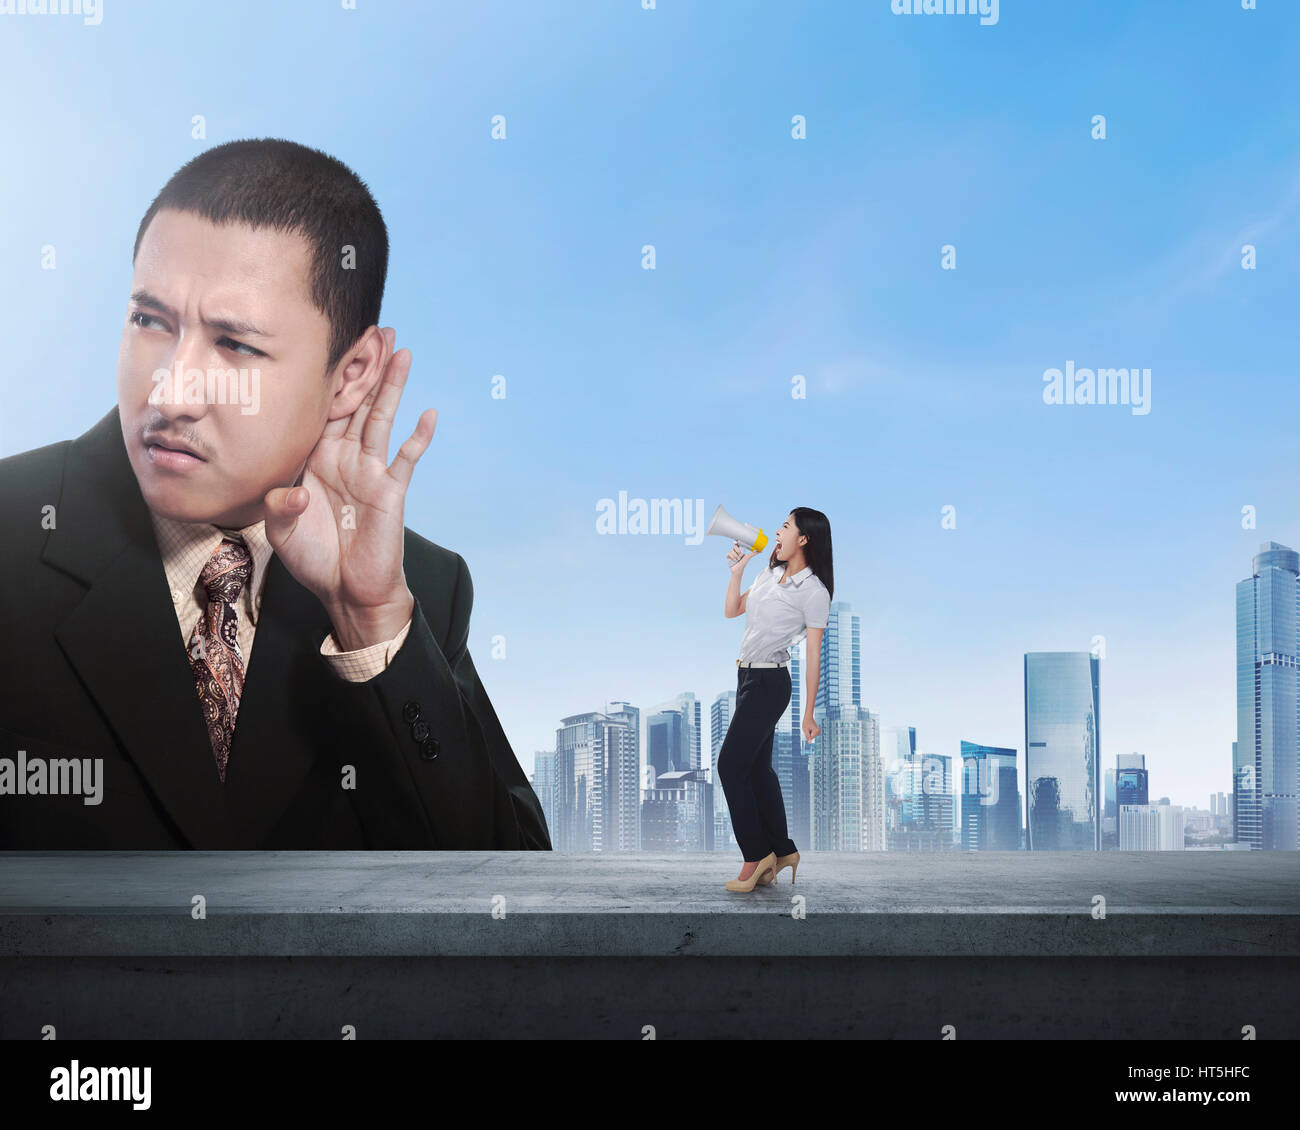 Business woman using megaphone say something to boss with cityscape background - Stock Image